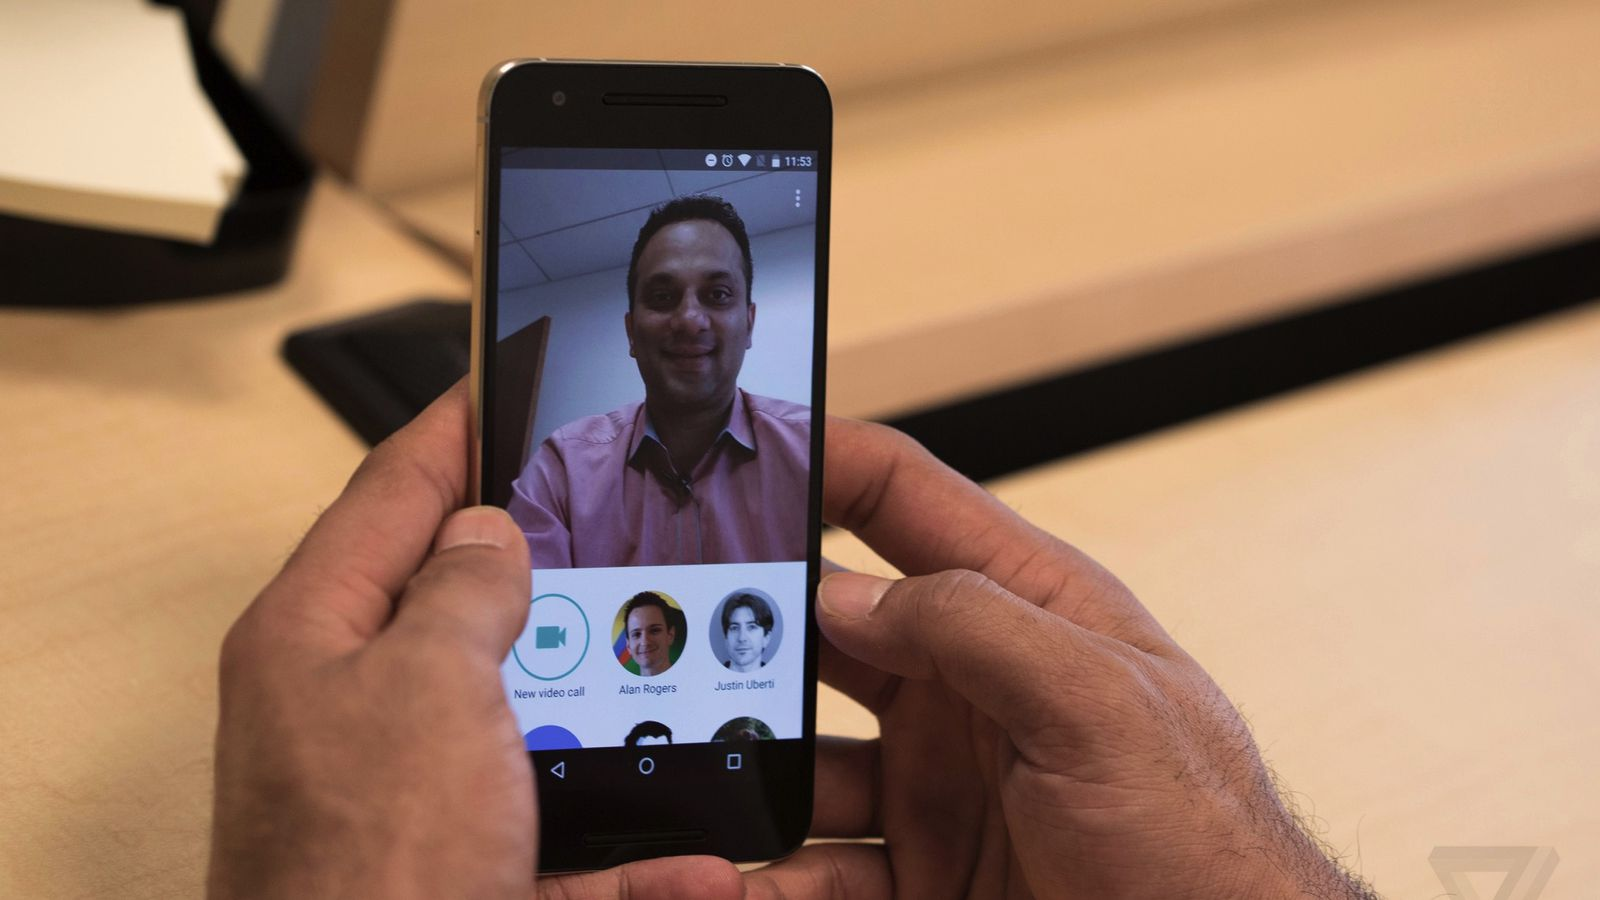 Google Duo makes mobile video calls fast and simple - The Verge